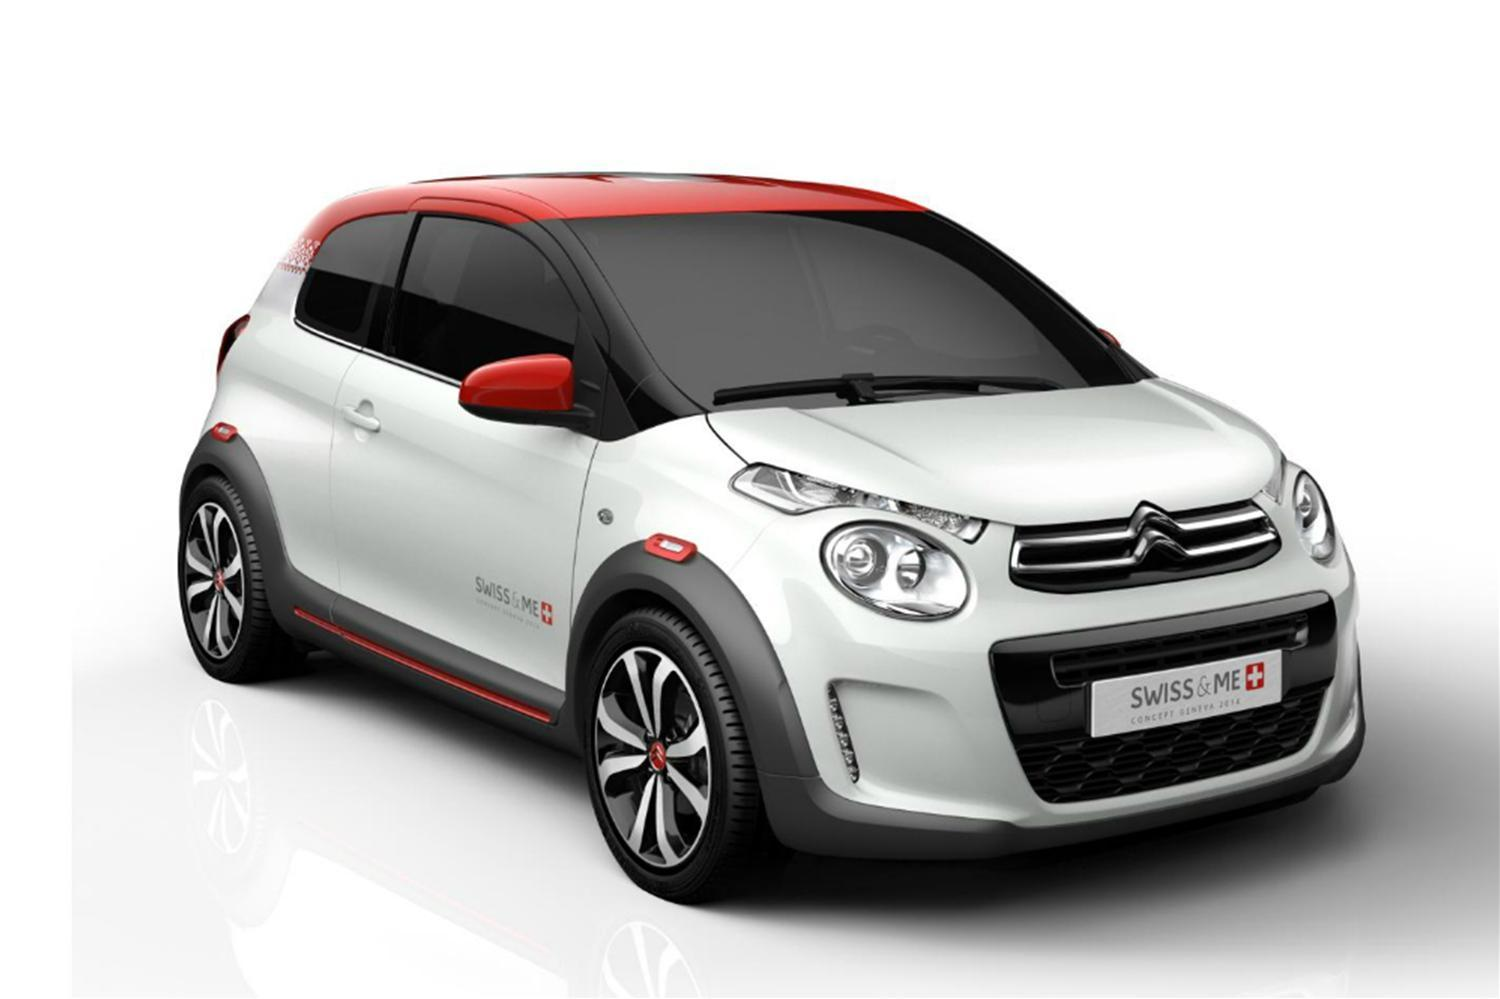 New Citroen C1 Special Edition Revealed